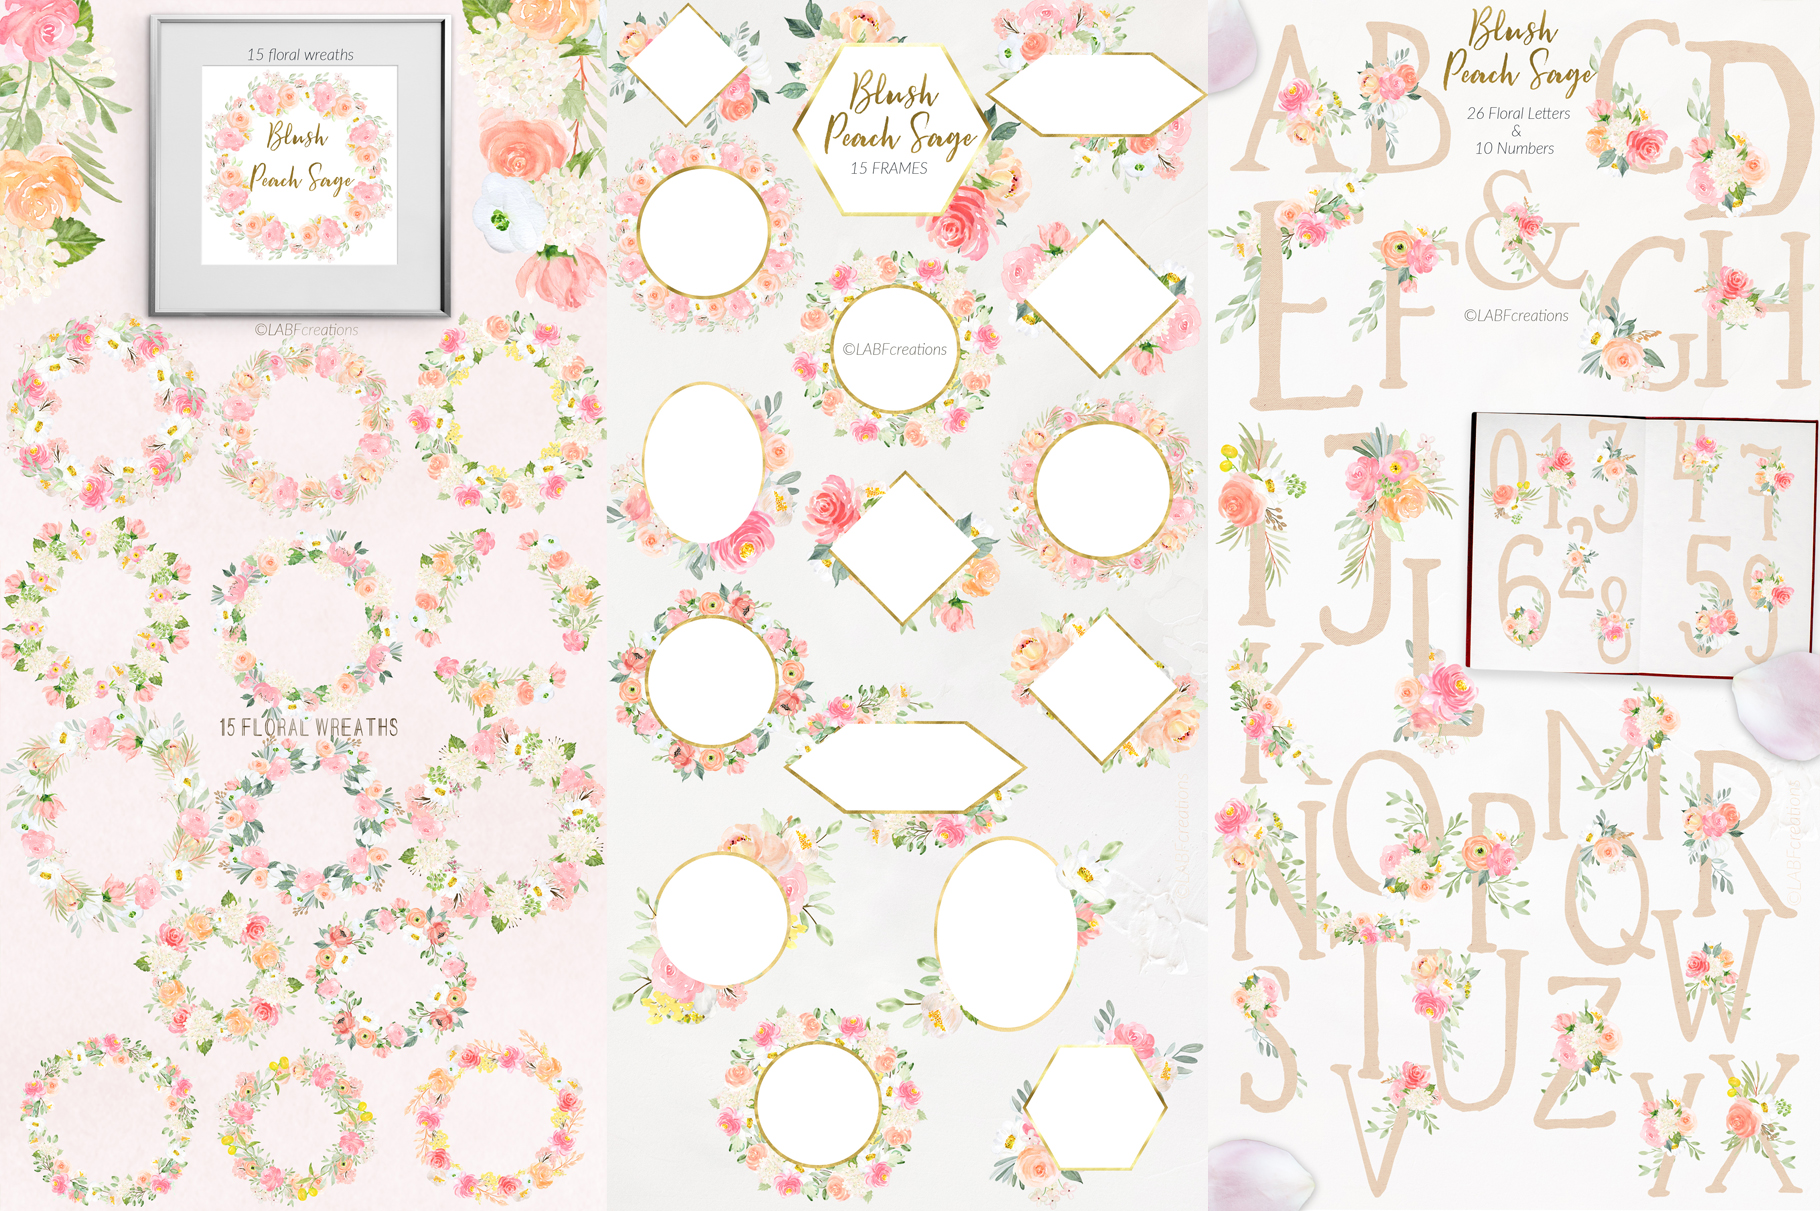 Blush Peach Sage Watercolor flowers clipart example image 9